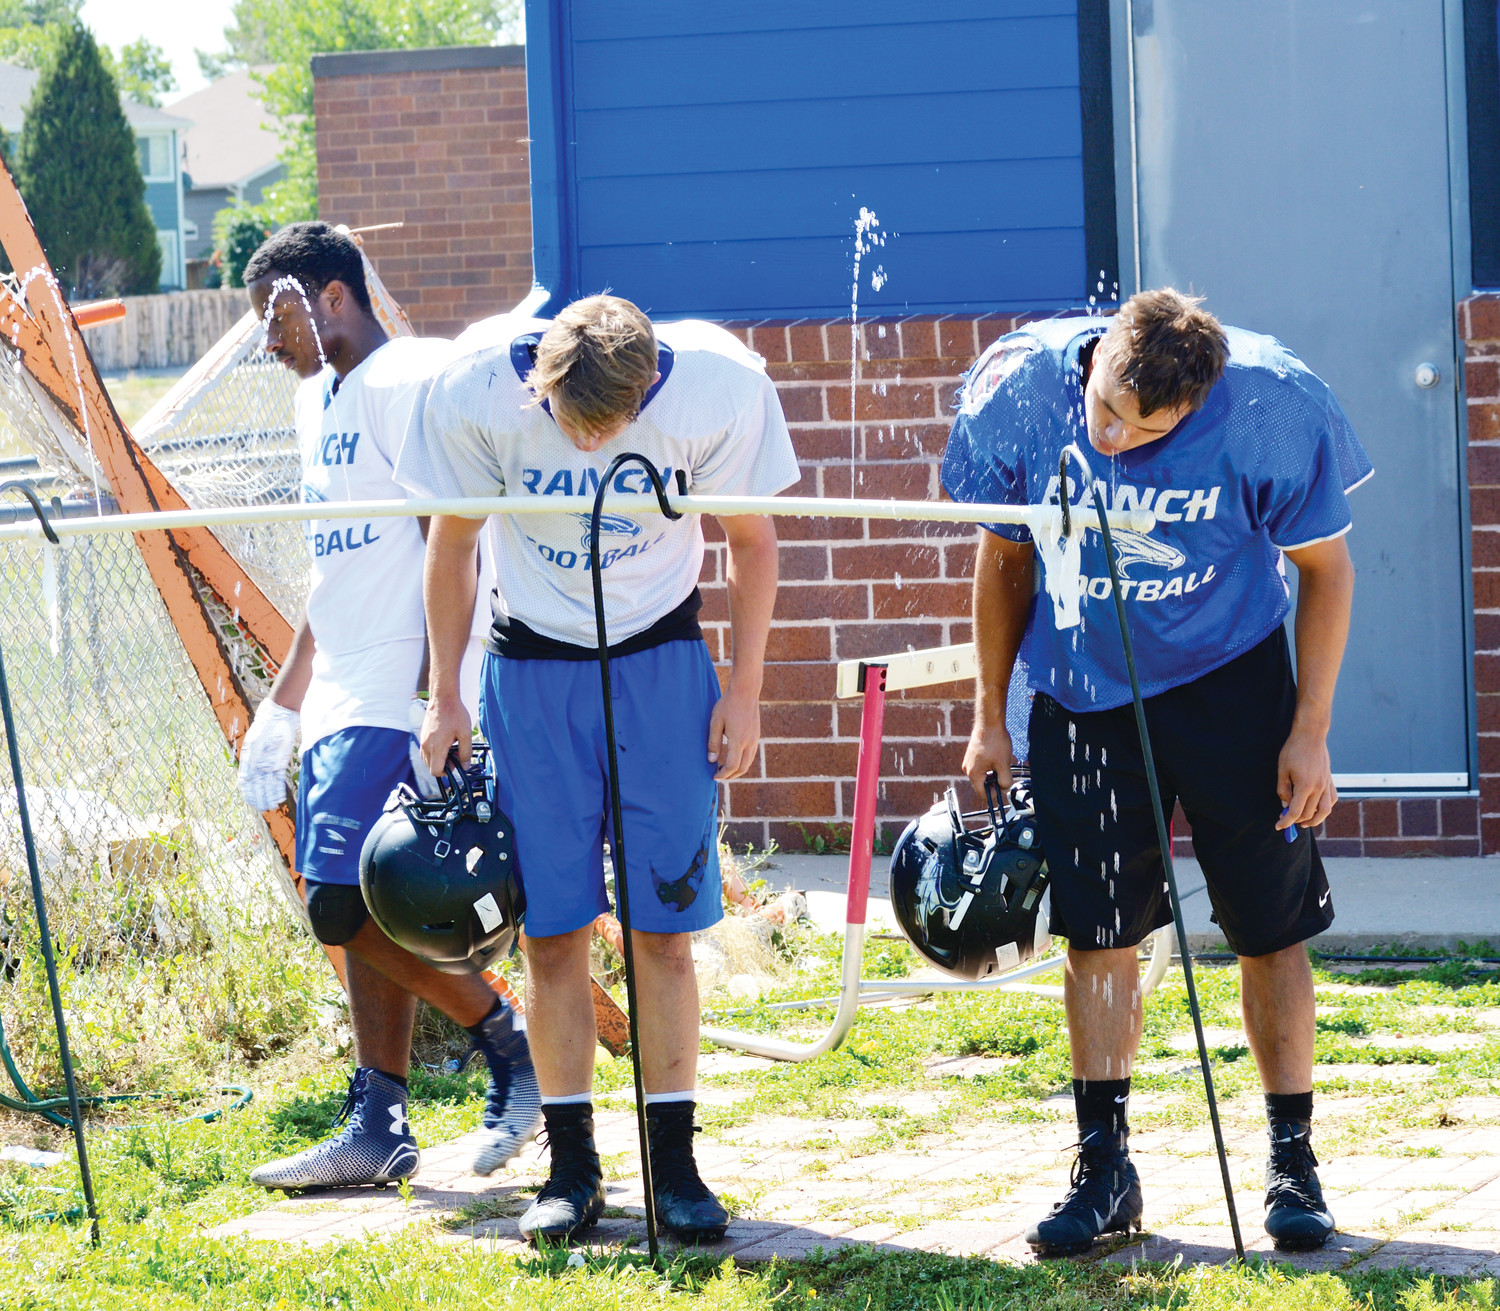 Highlands Ranch High School football players hydrate during a recent practice. Drinking plenty of water and eating the right foods are critical to players' success, coaches and nutrition experts say.